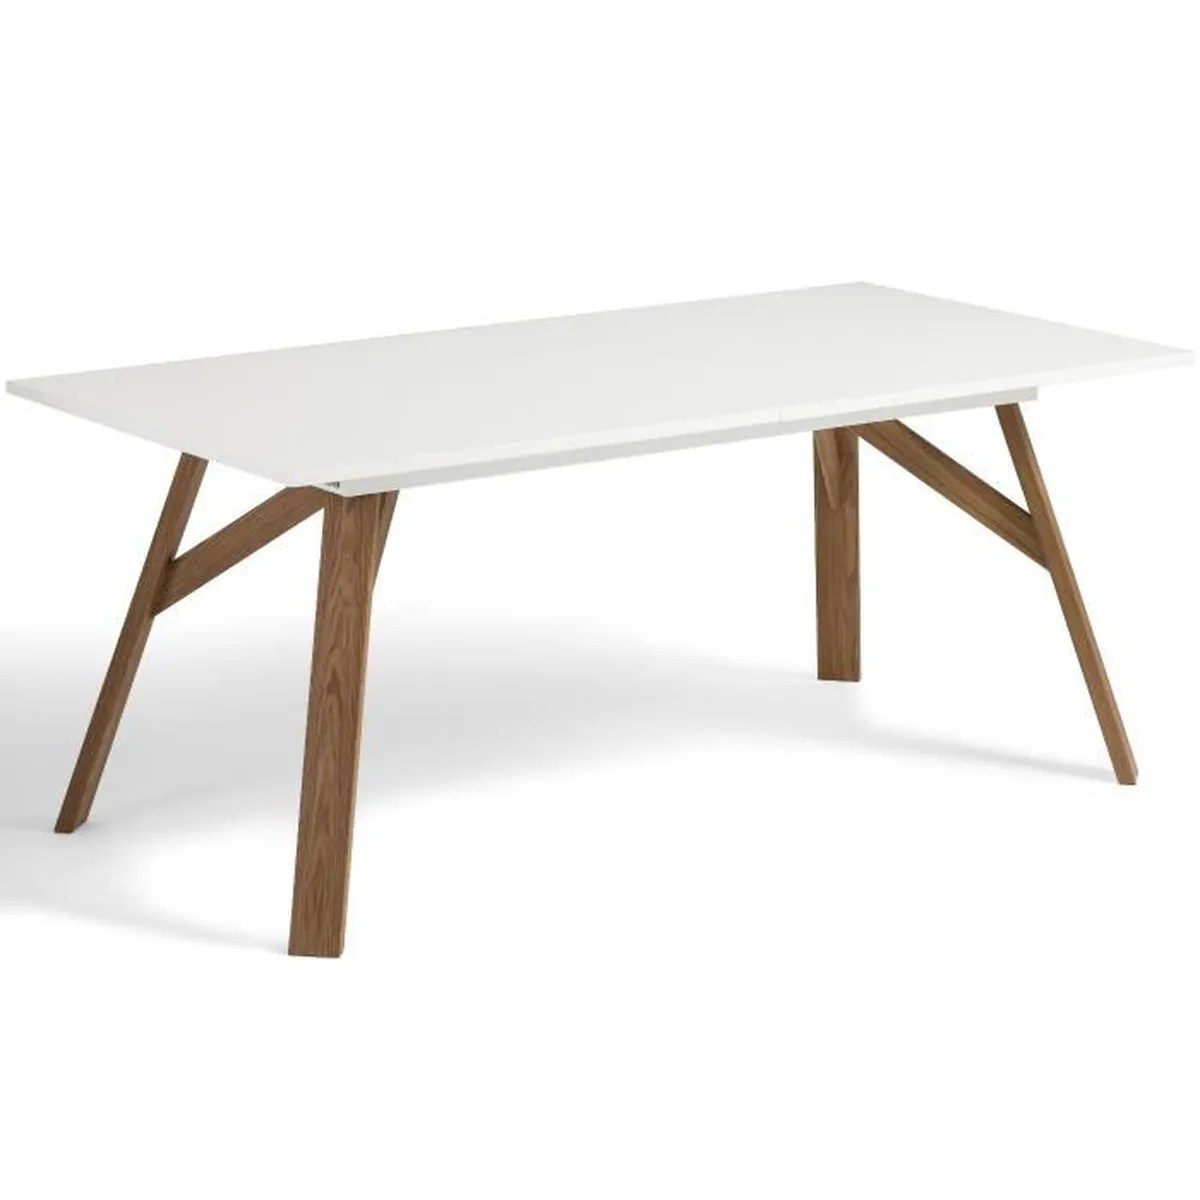 Table à Manger Extensible Design Table à Manger Extensible Design Scandinave Tycka Blanc